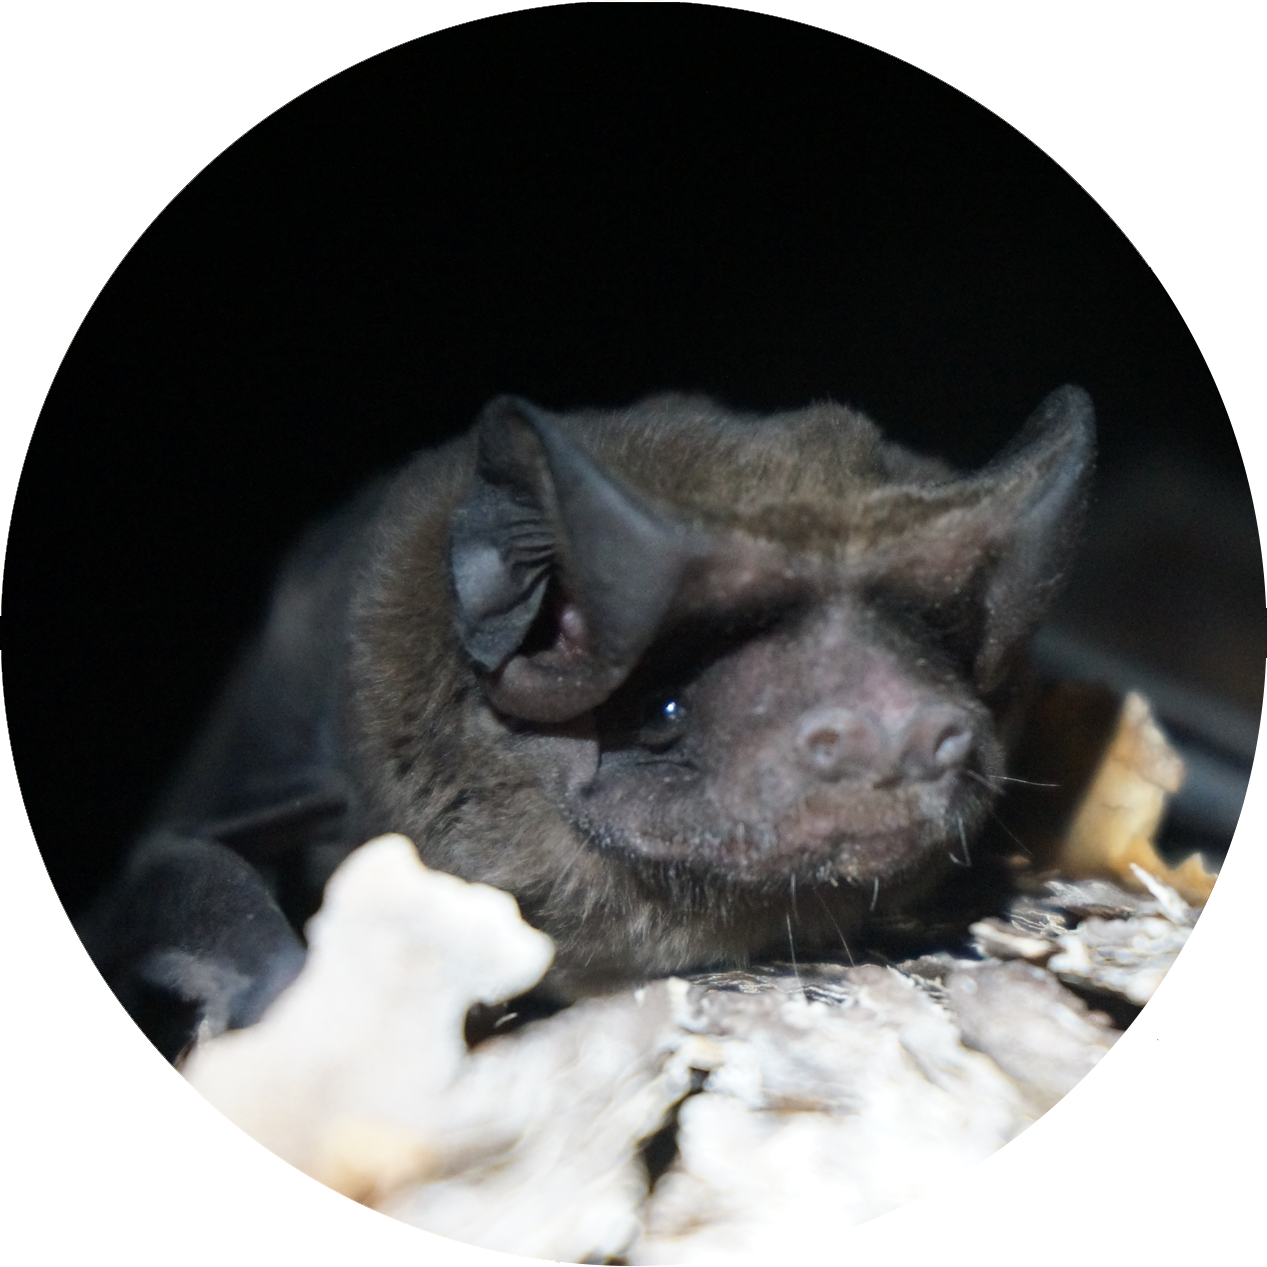 Micaela Jemsion / Bat Conservation International